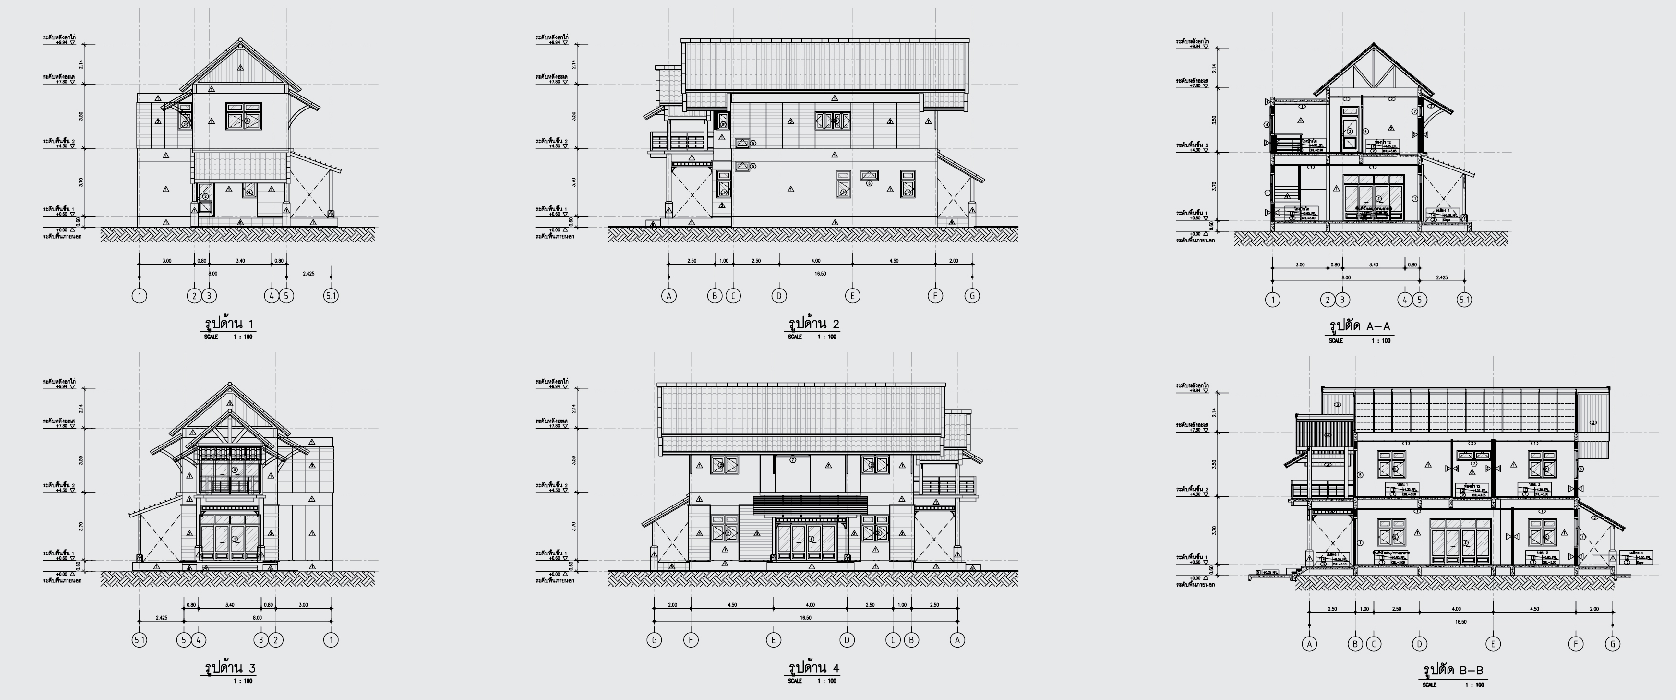 2 storey contemporary thai 3 bedroom house (5)